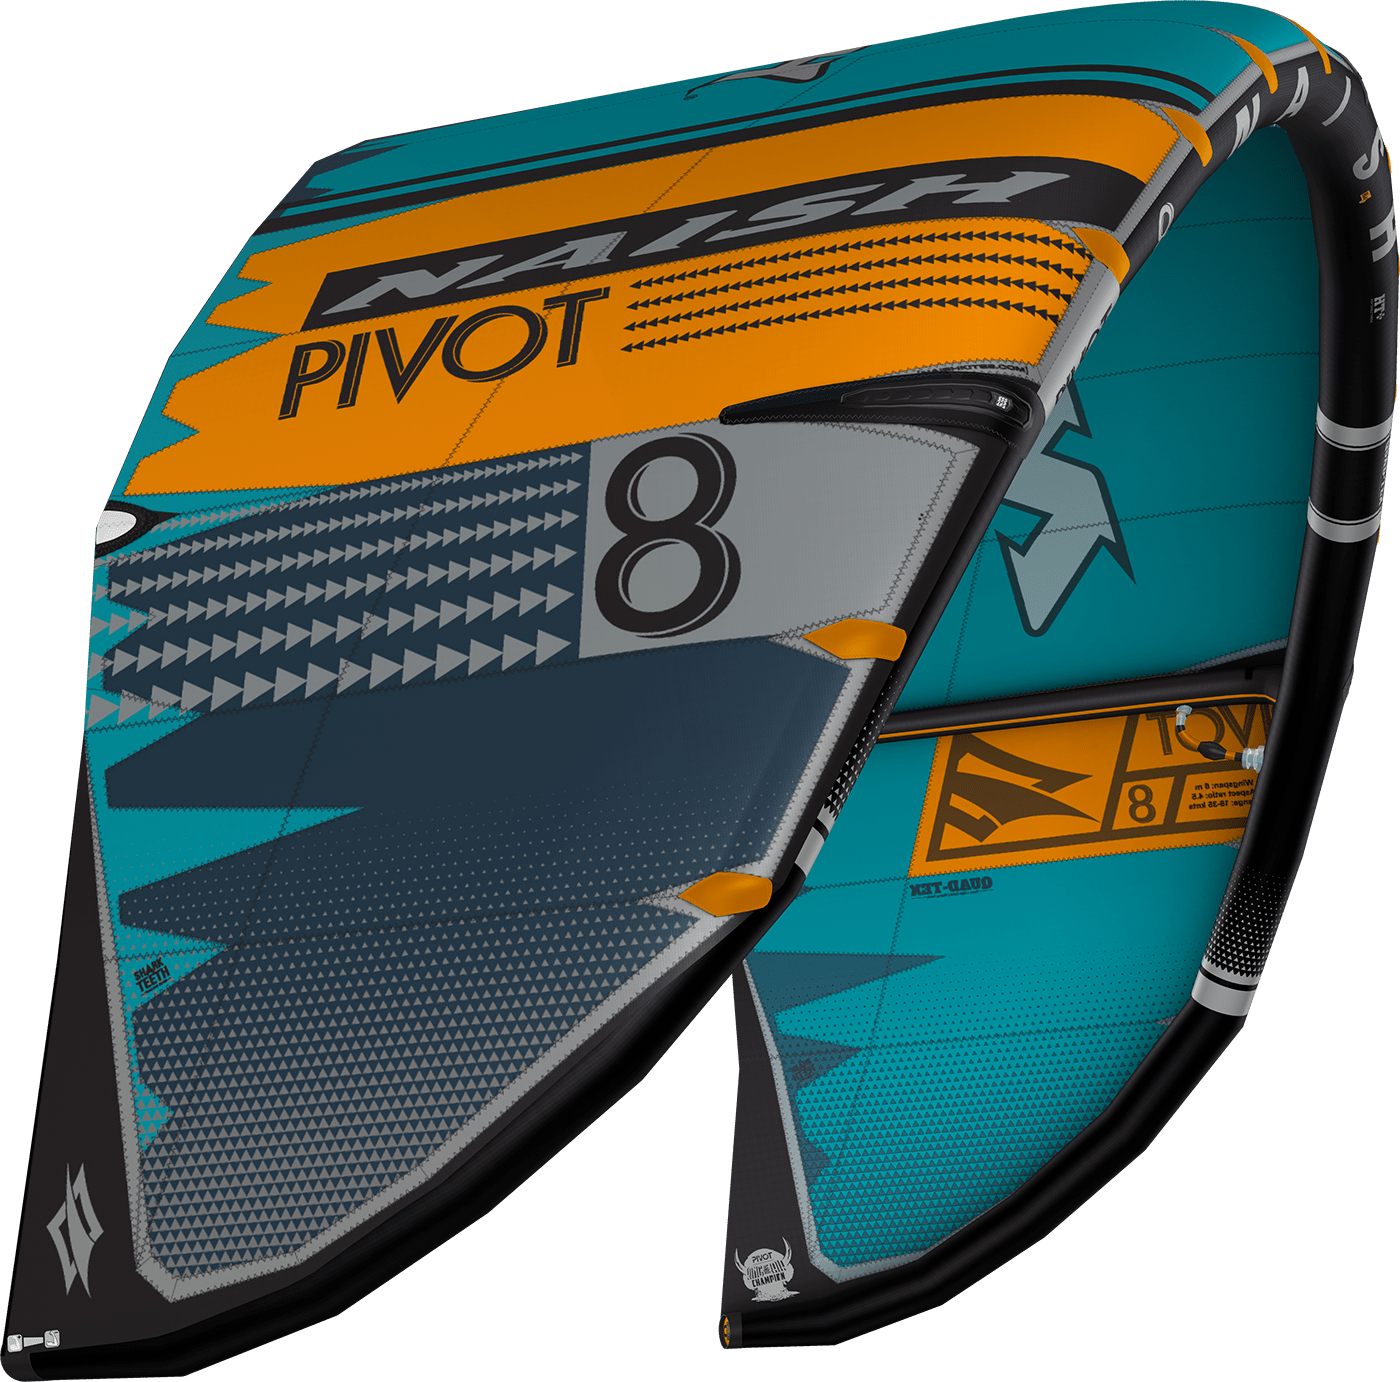 Naish Kite 20 Pivot 9.0